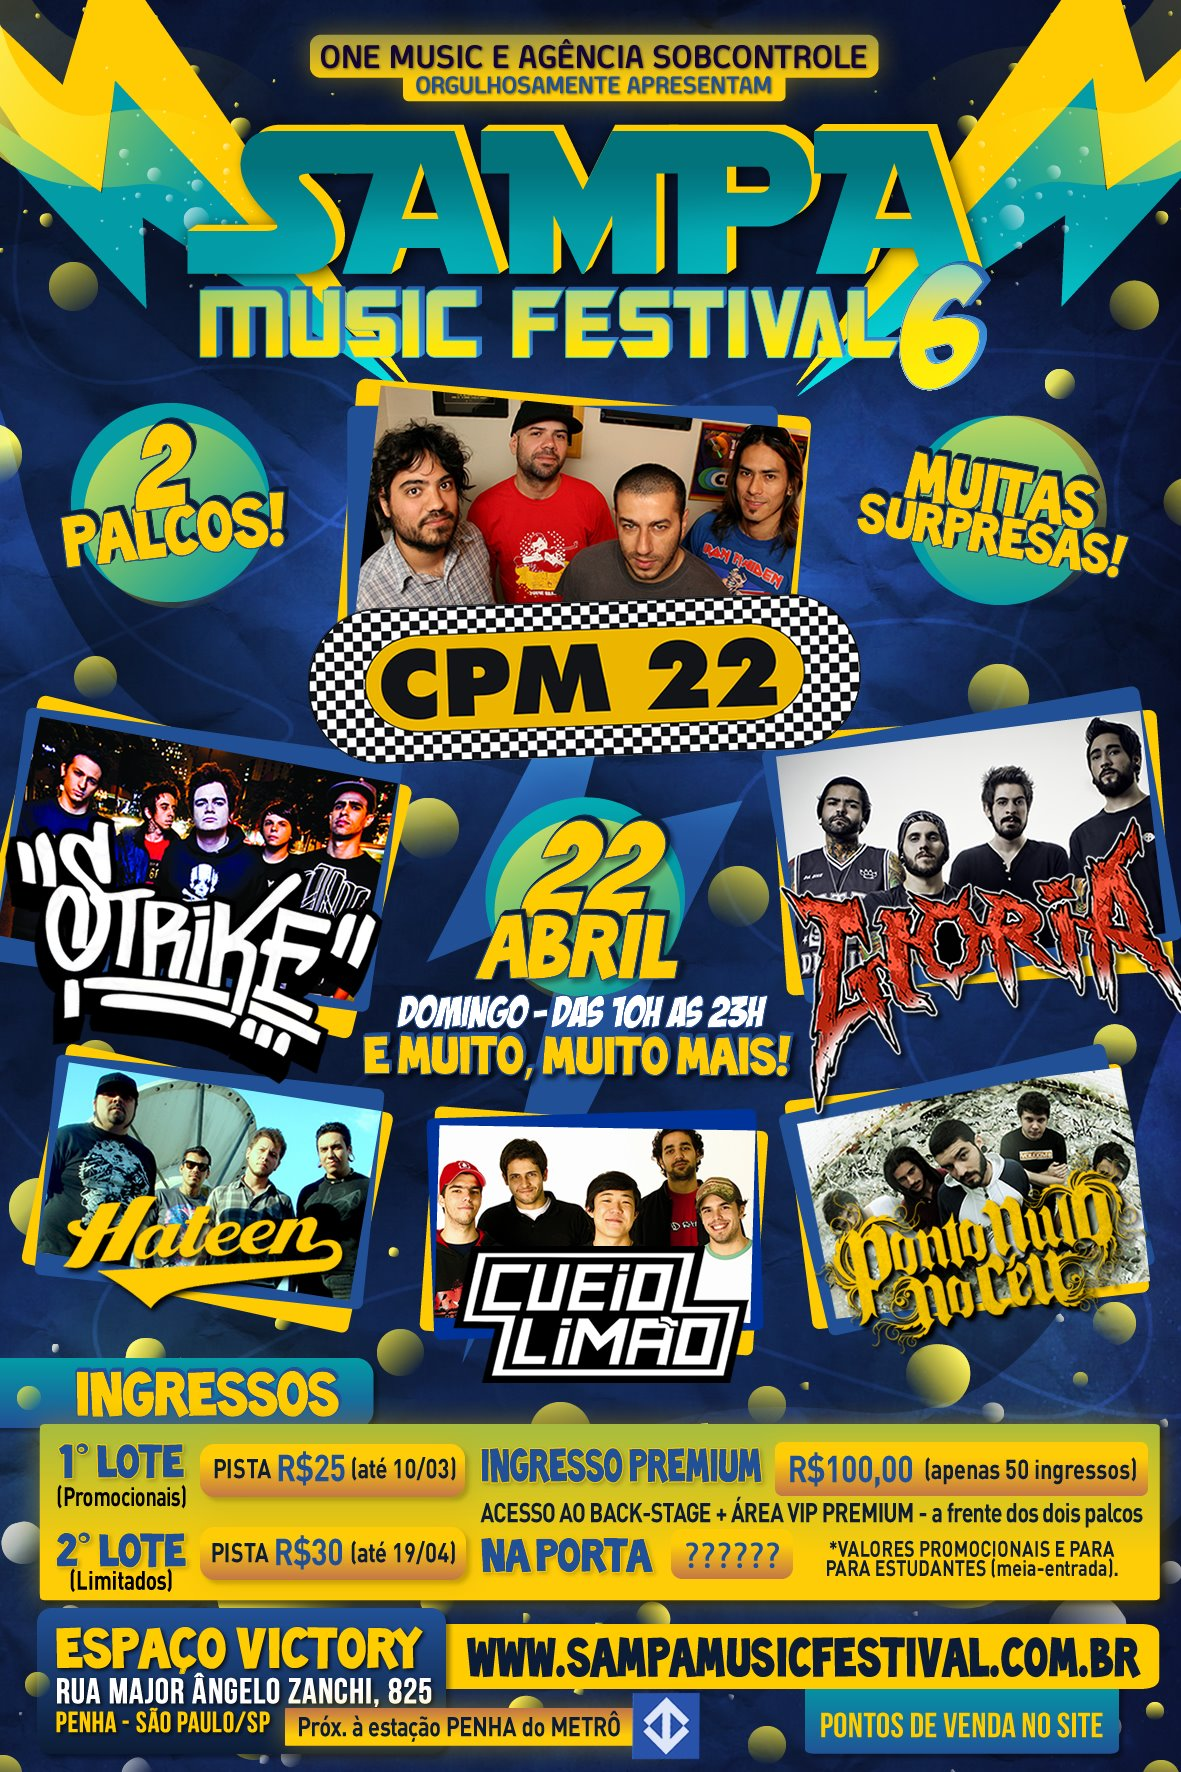 Sampa Music Festival 6